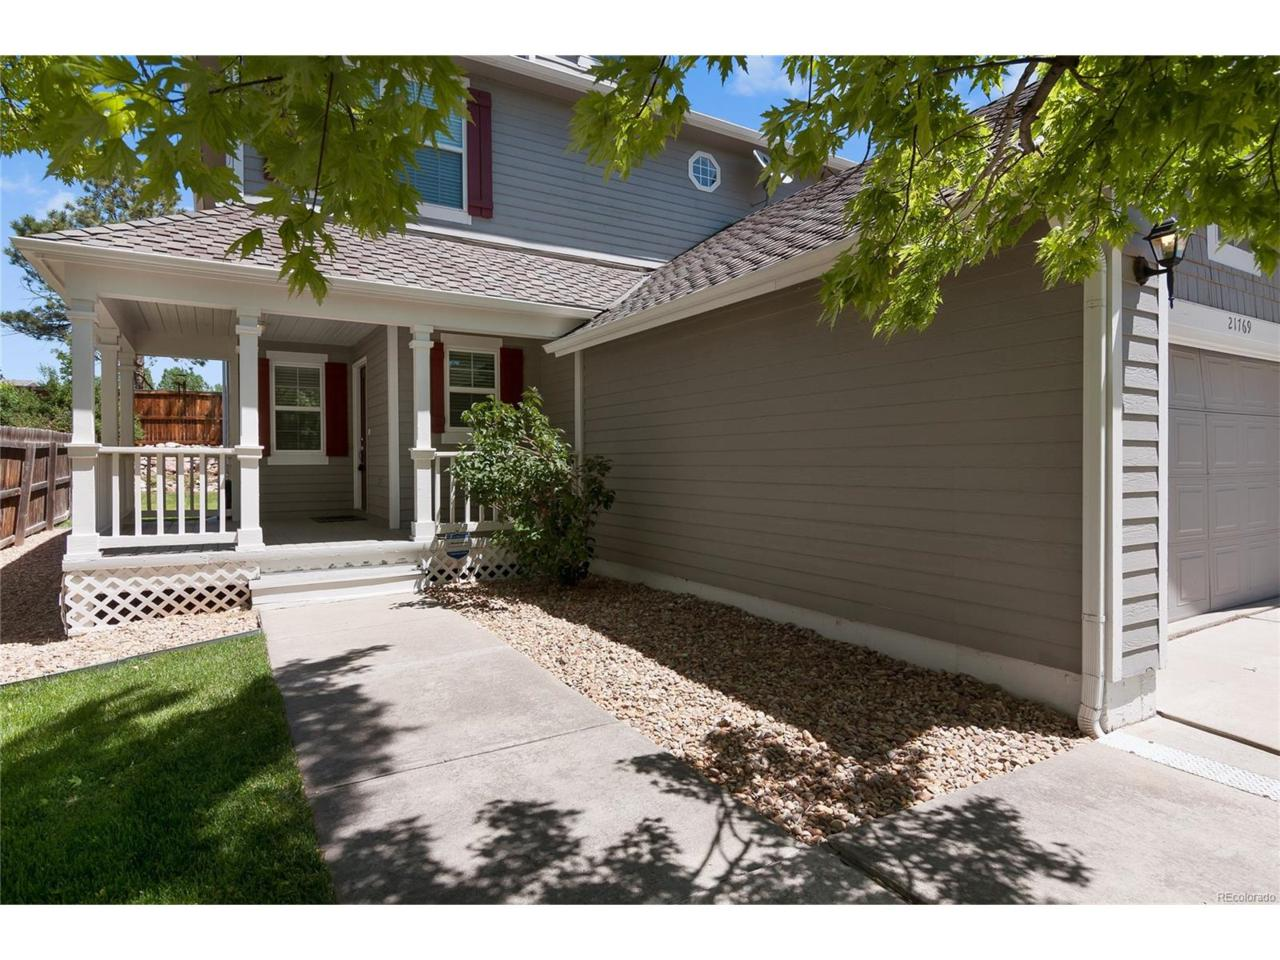 21769 Saddlebrook Drive, Parker, CO 80138 (MLS #2170775) :: 8z Real Estate